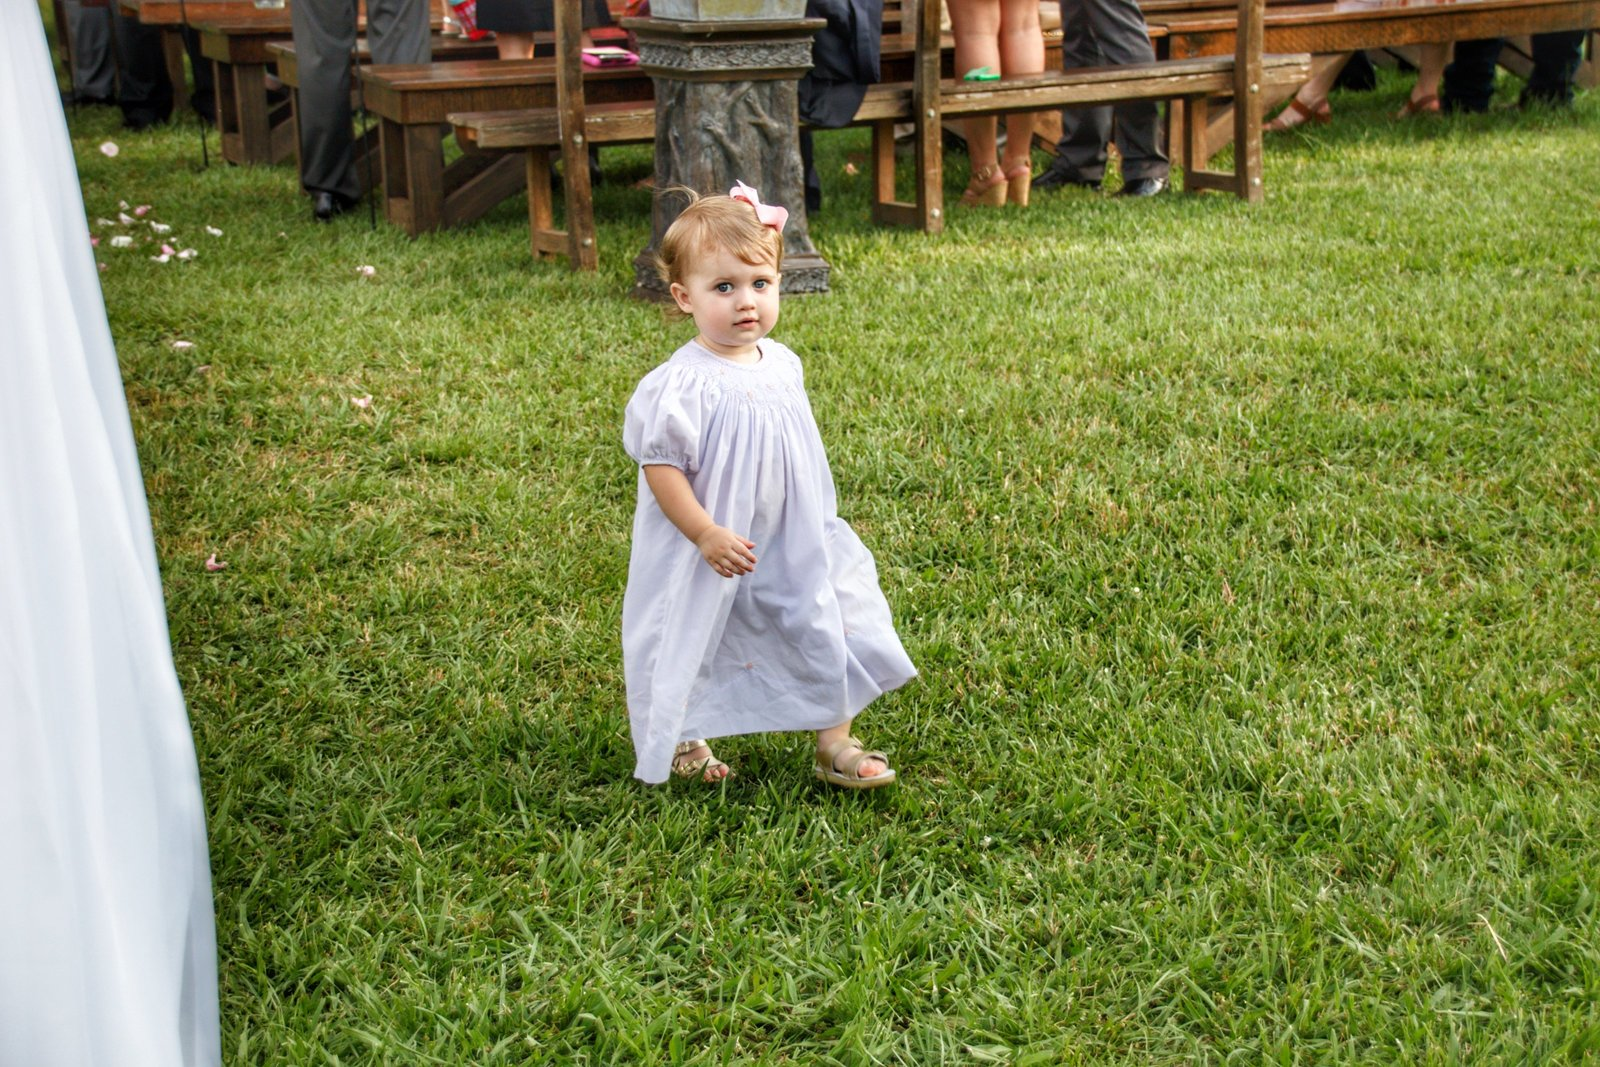 Check out this adorable little guest at the Sweet Meadow Farm wedding in GA.